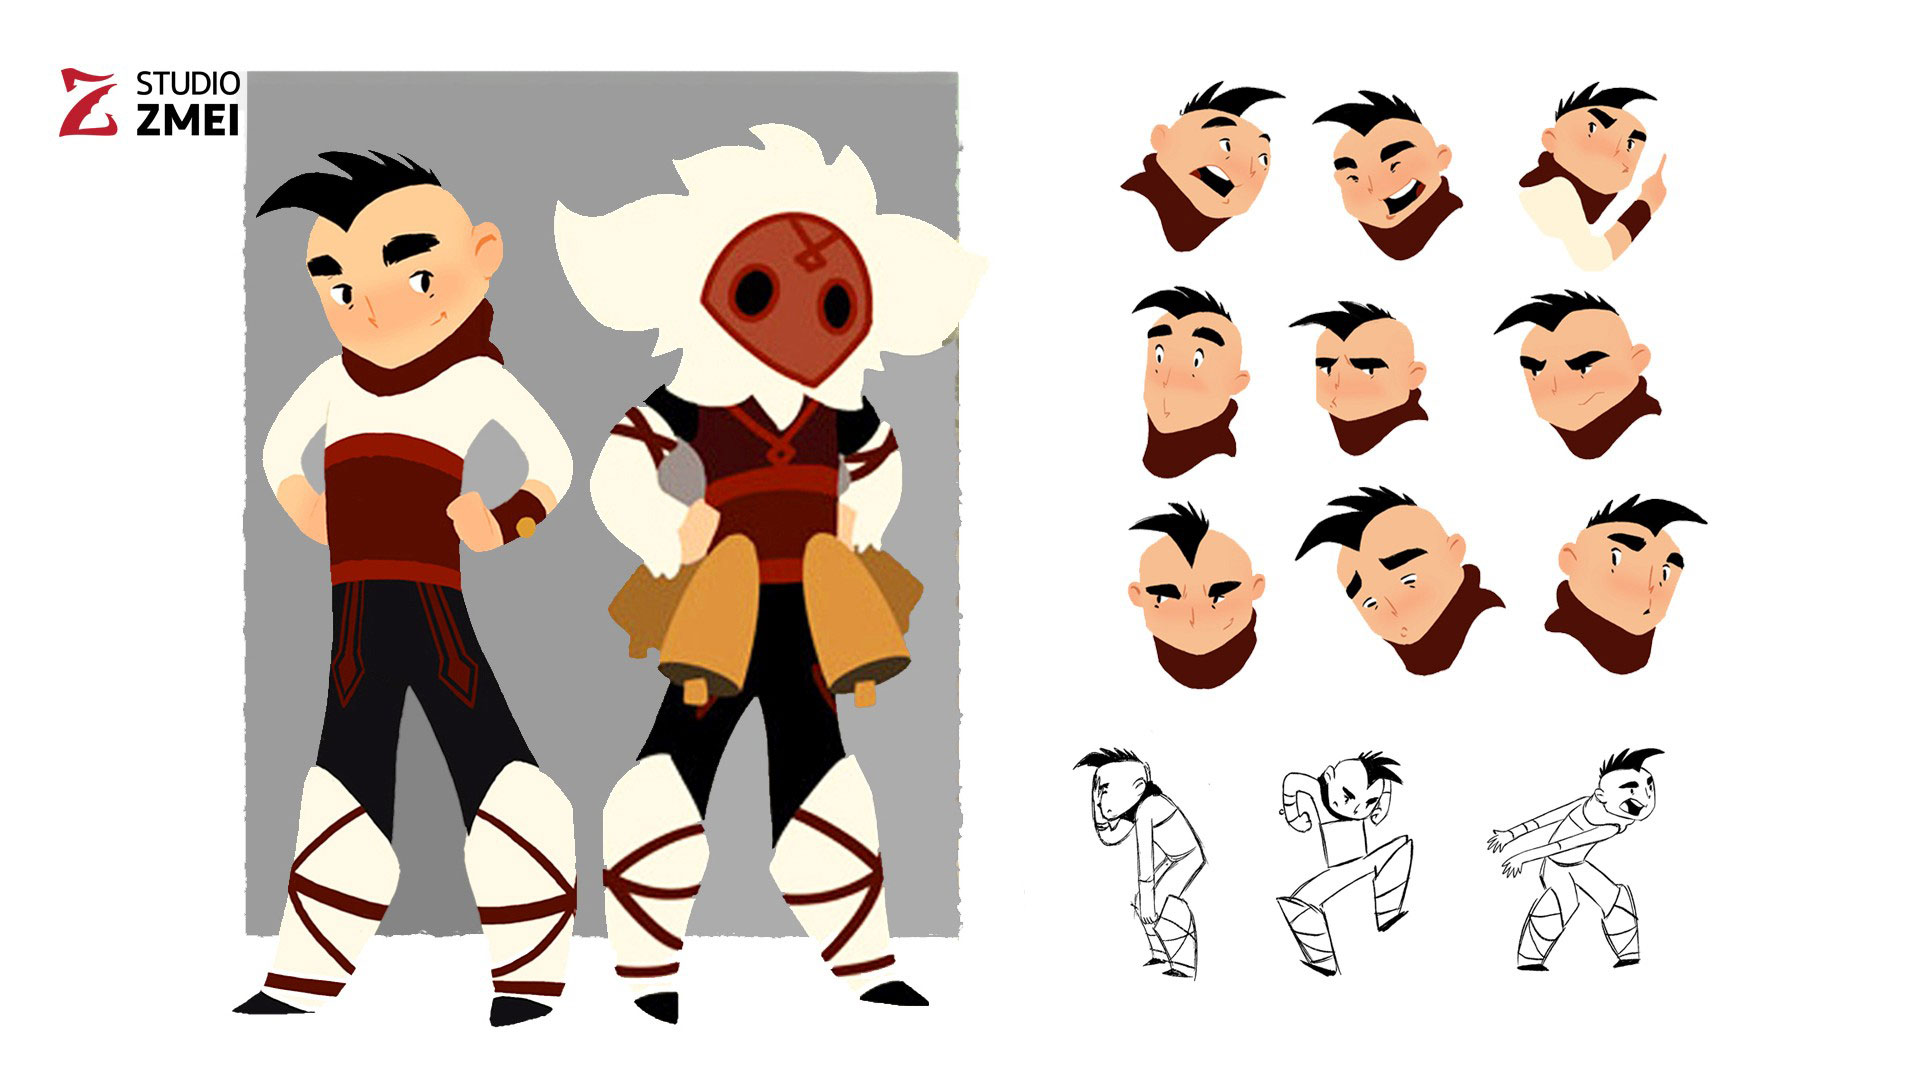 Character Design Studio : Character design the golden apple studio zmei